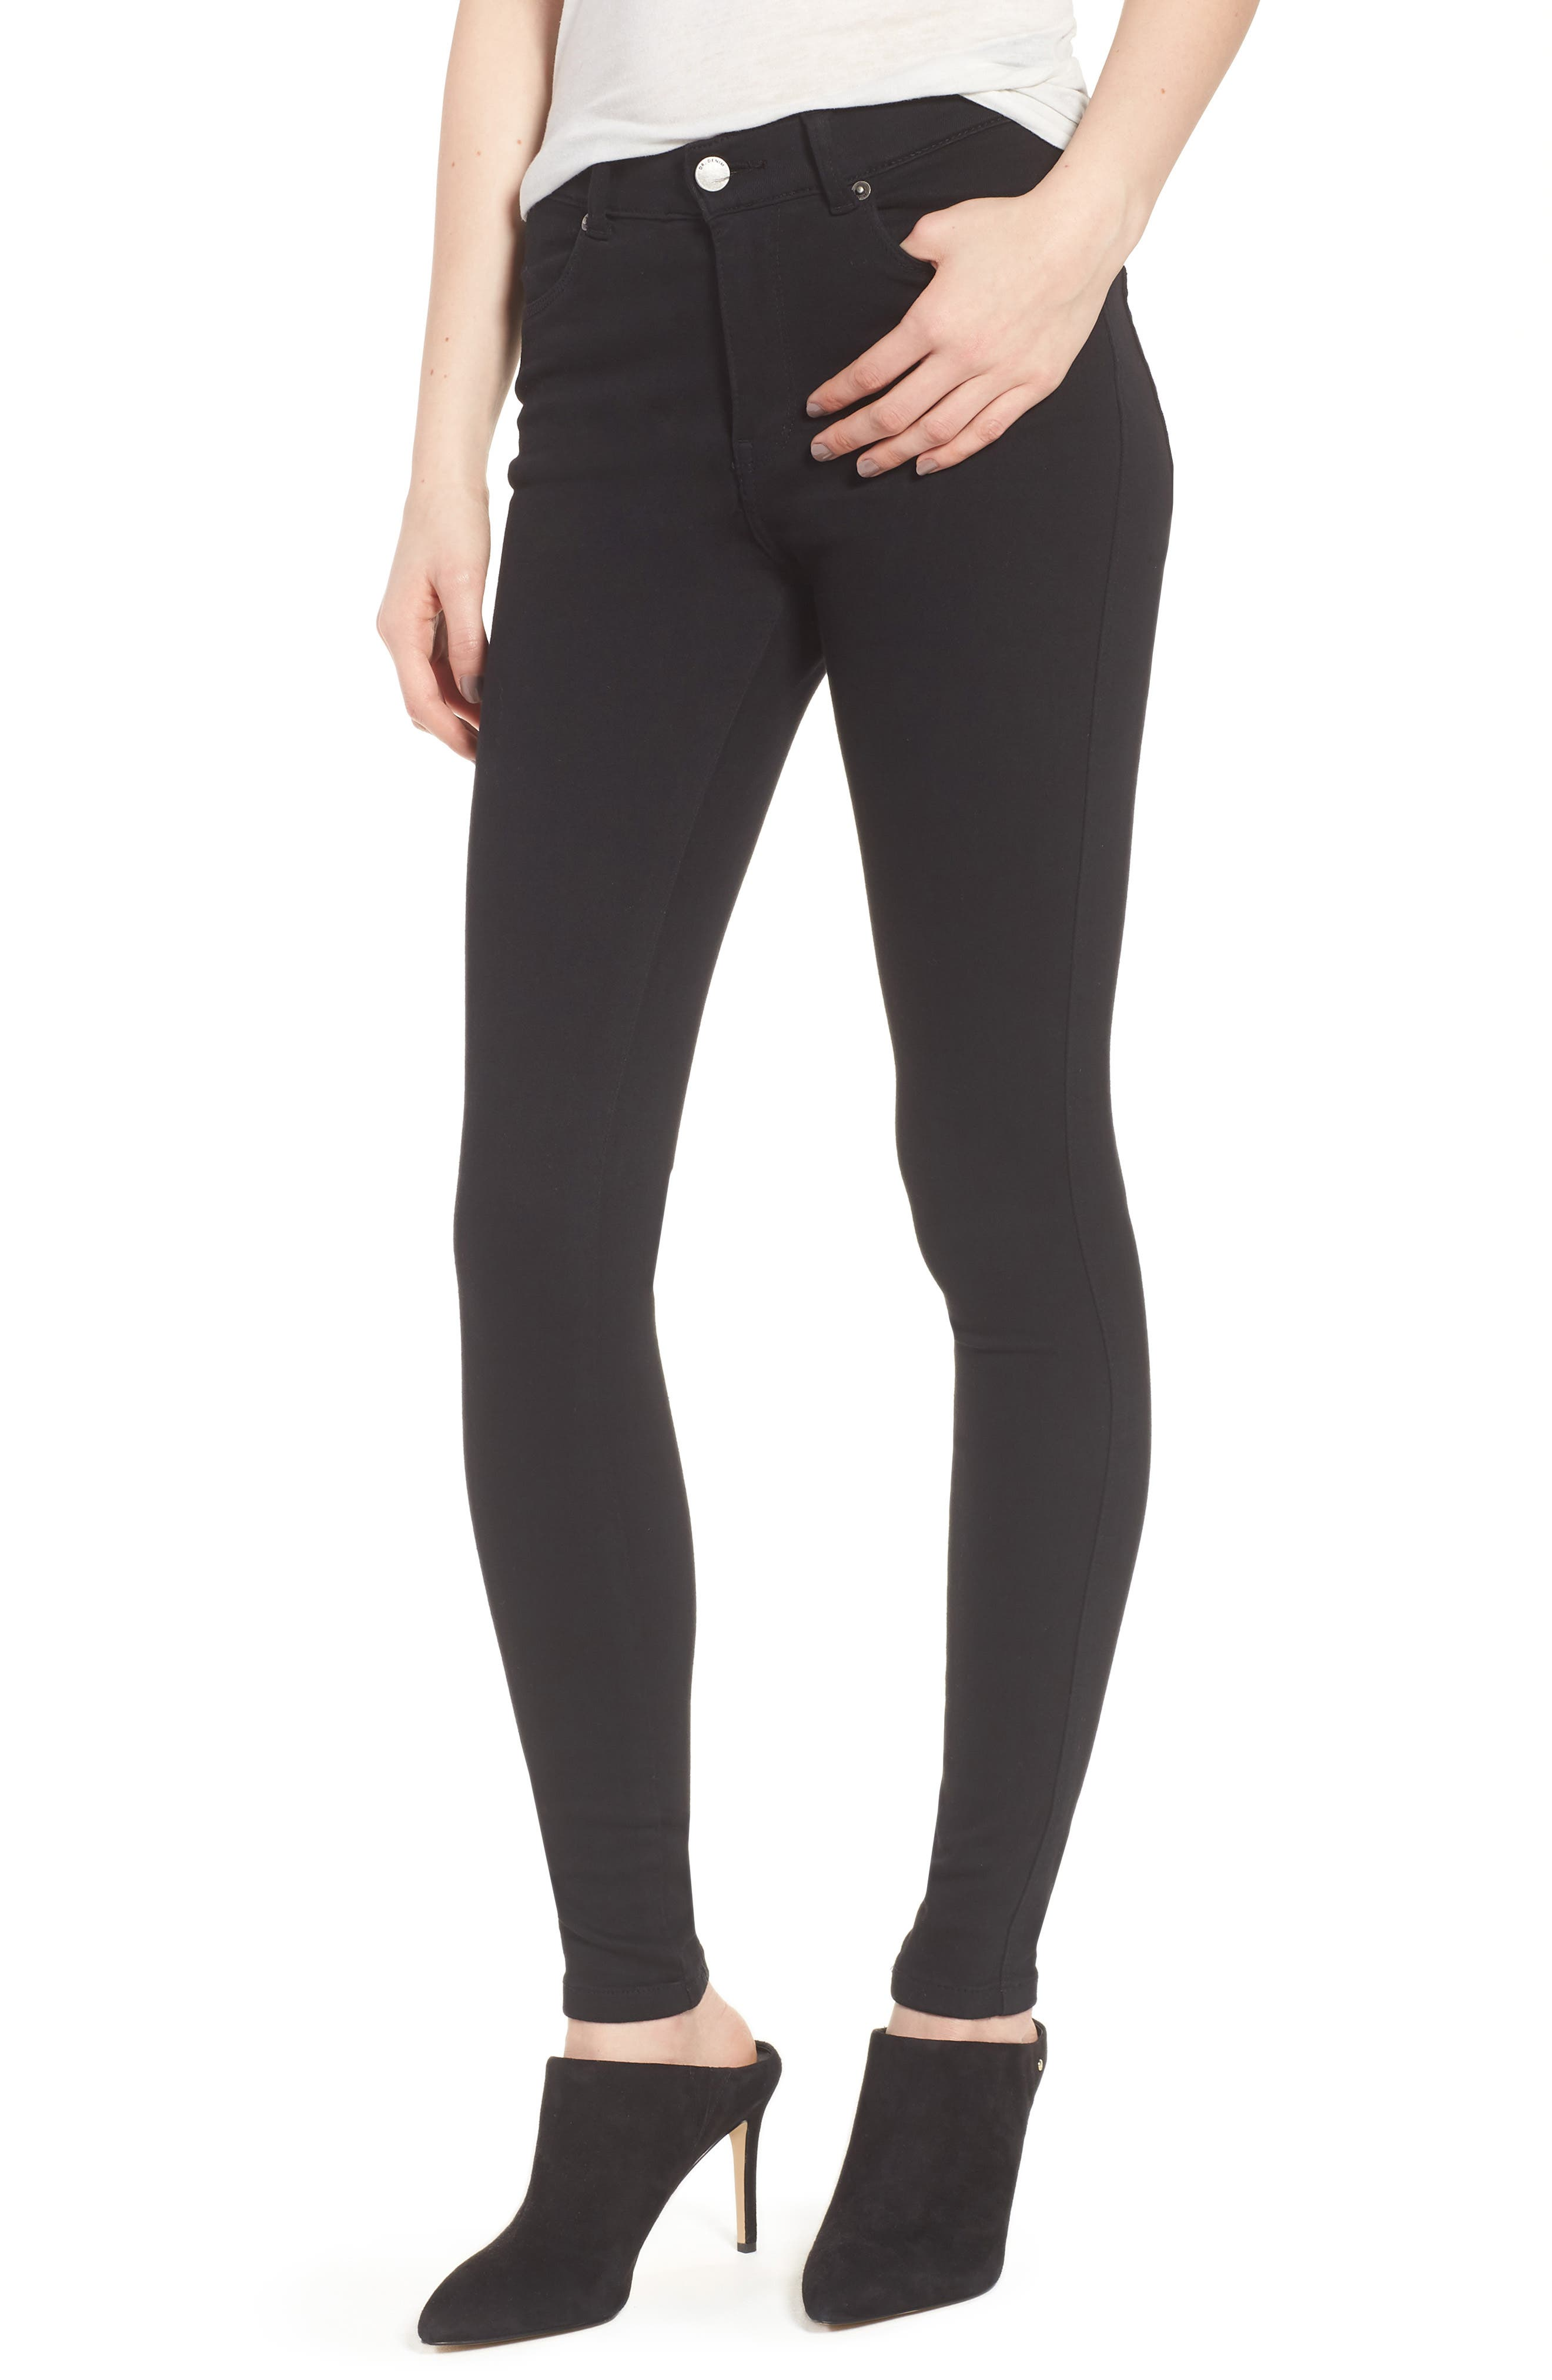 Lexy Skinny Jeans,                         Main,                         color, Black